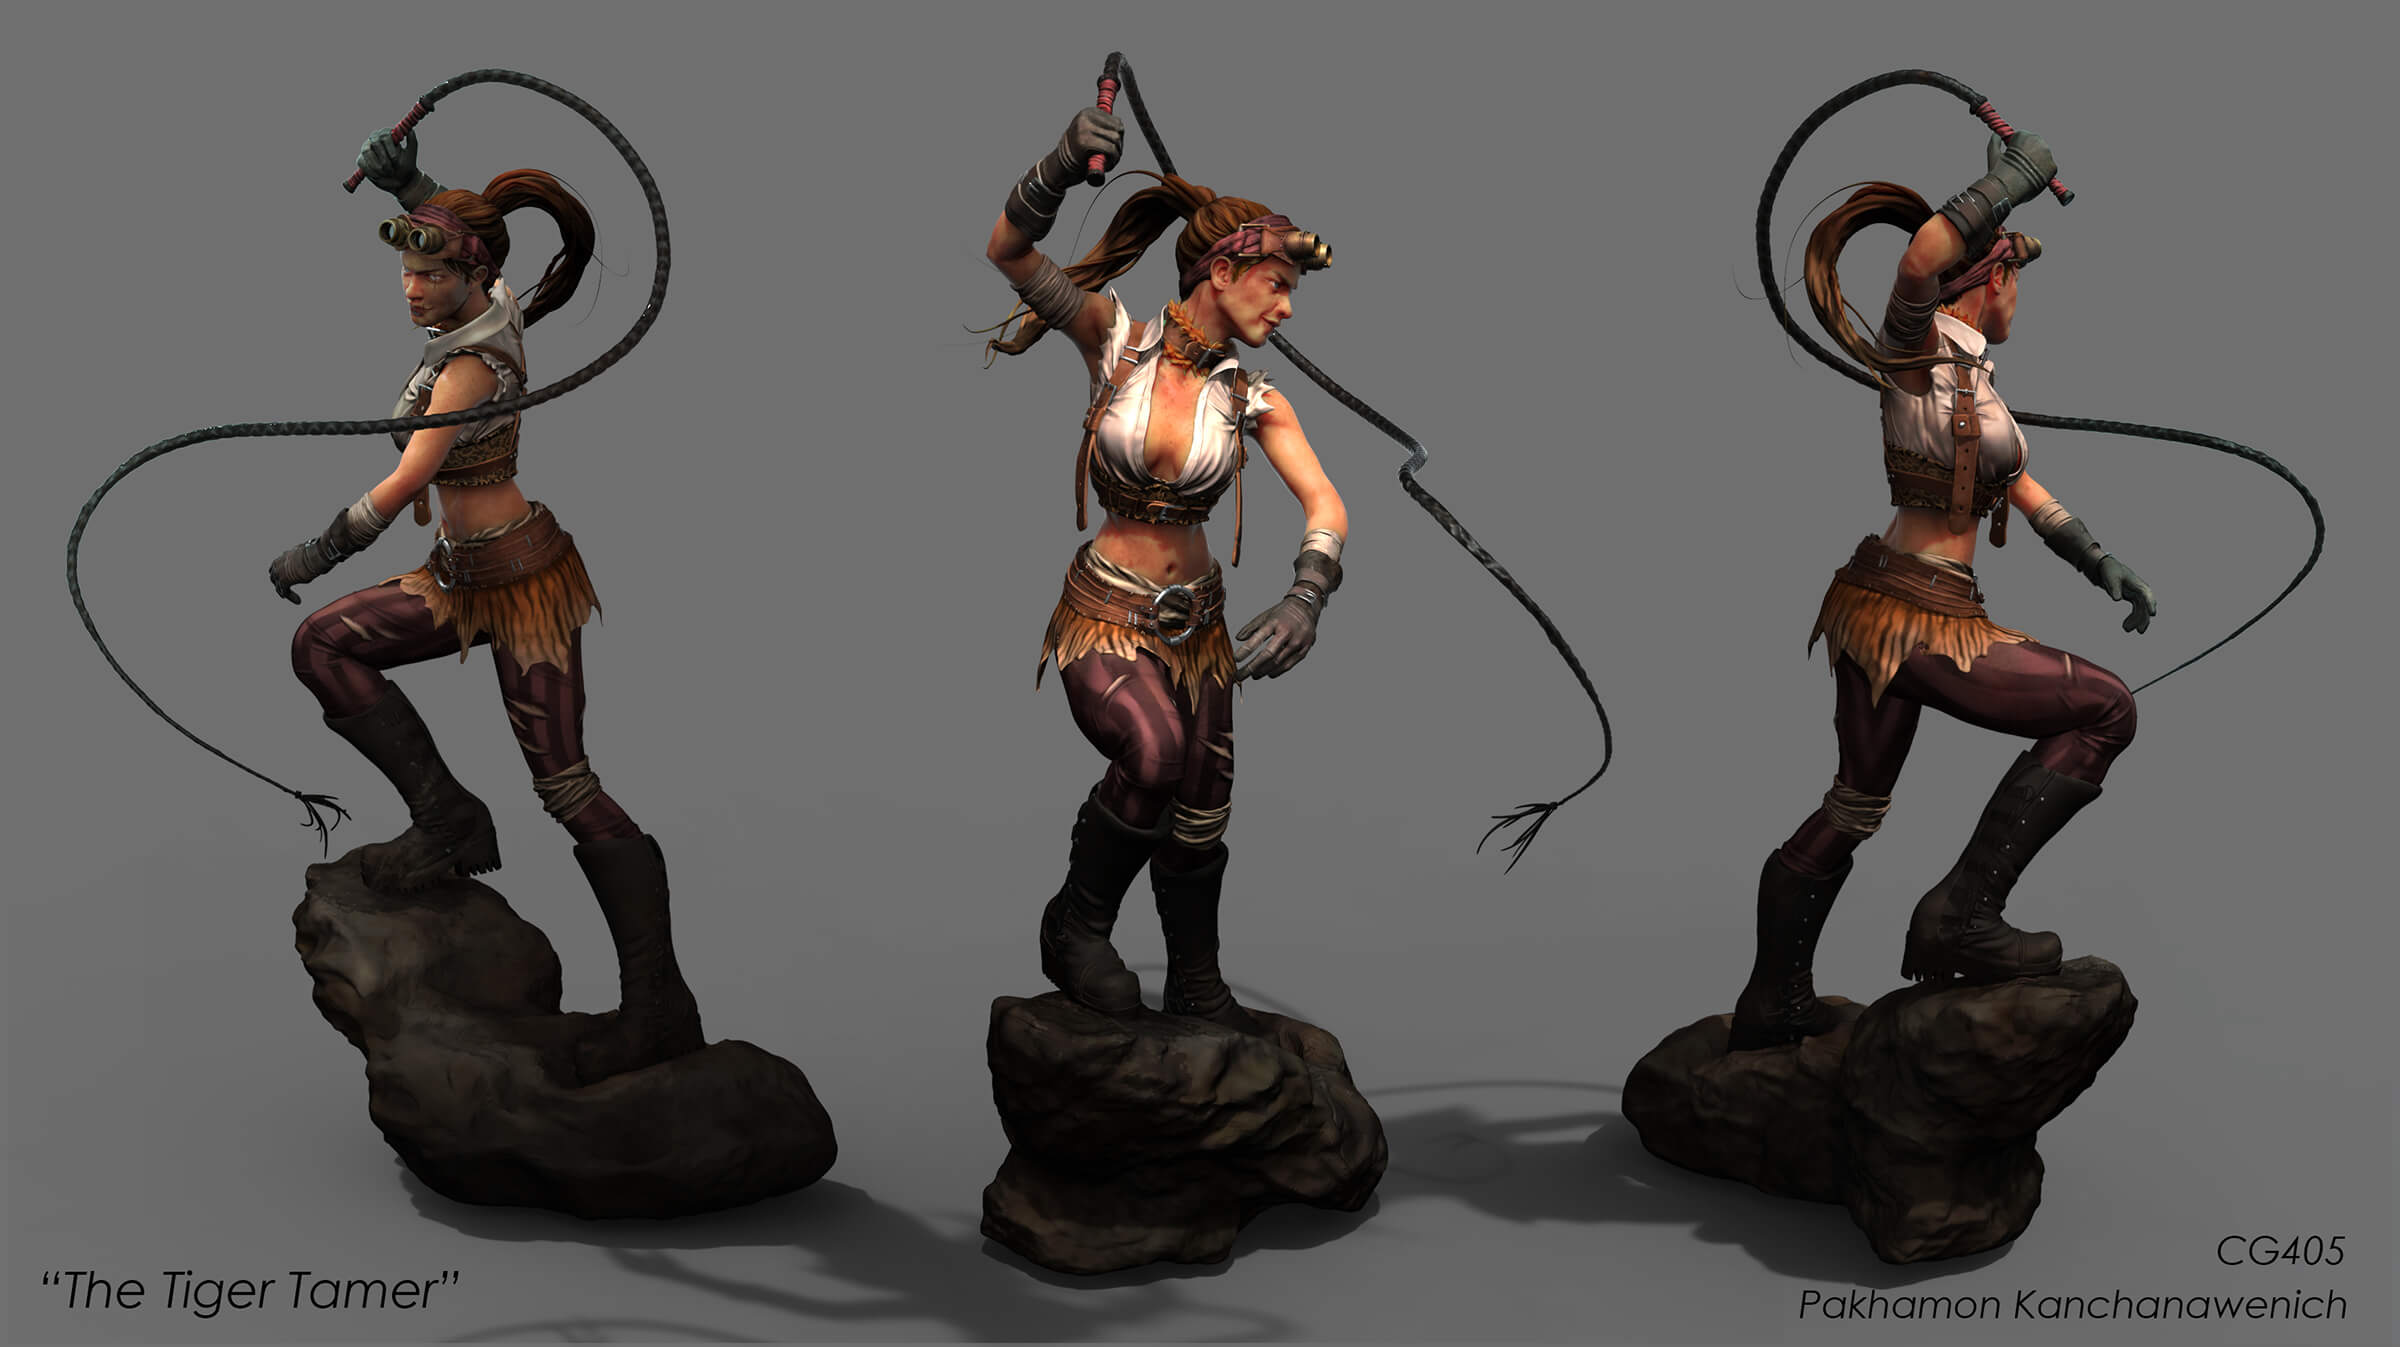 Multiple angles of a woman wearing goggles, brandishing a whip